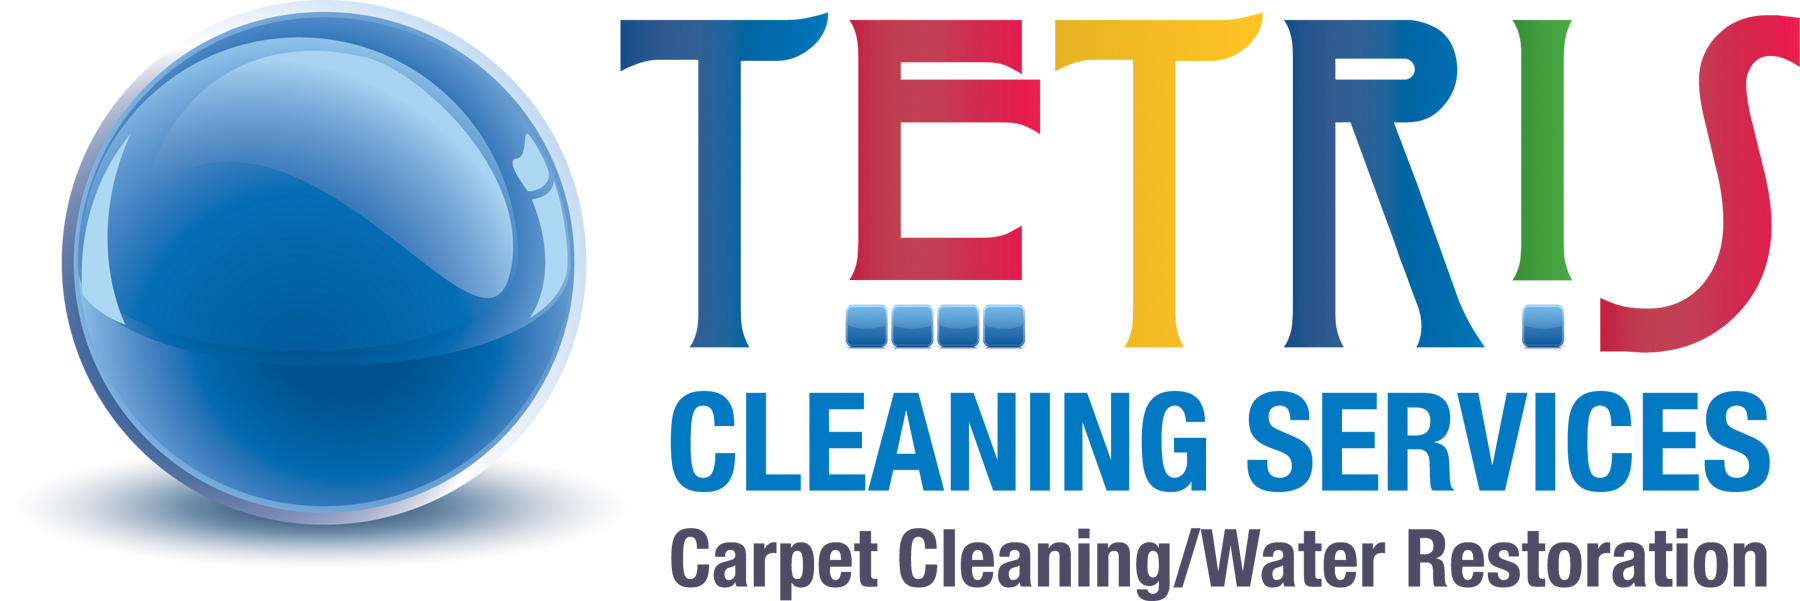 Tetris Cleaning Services LLC